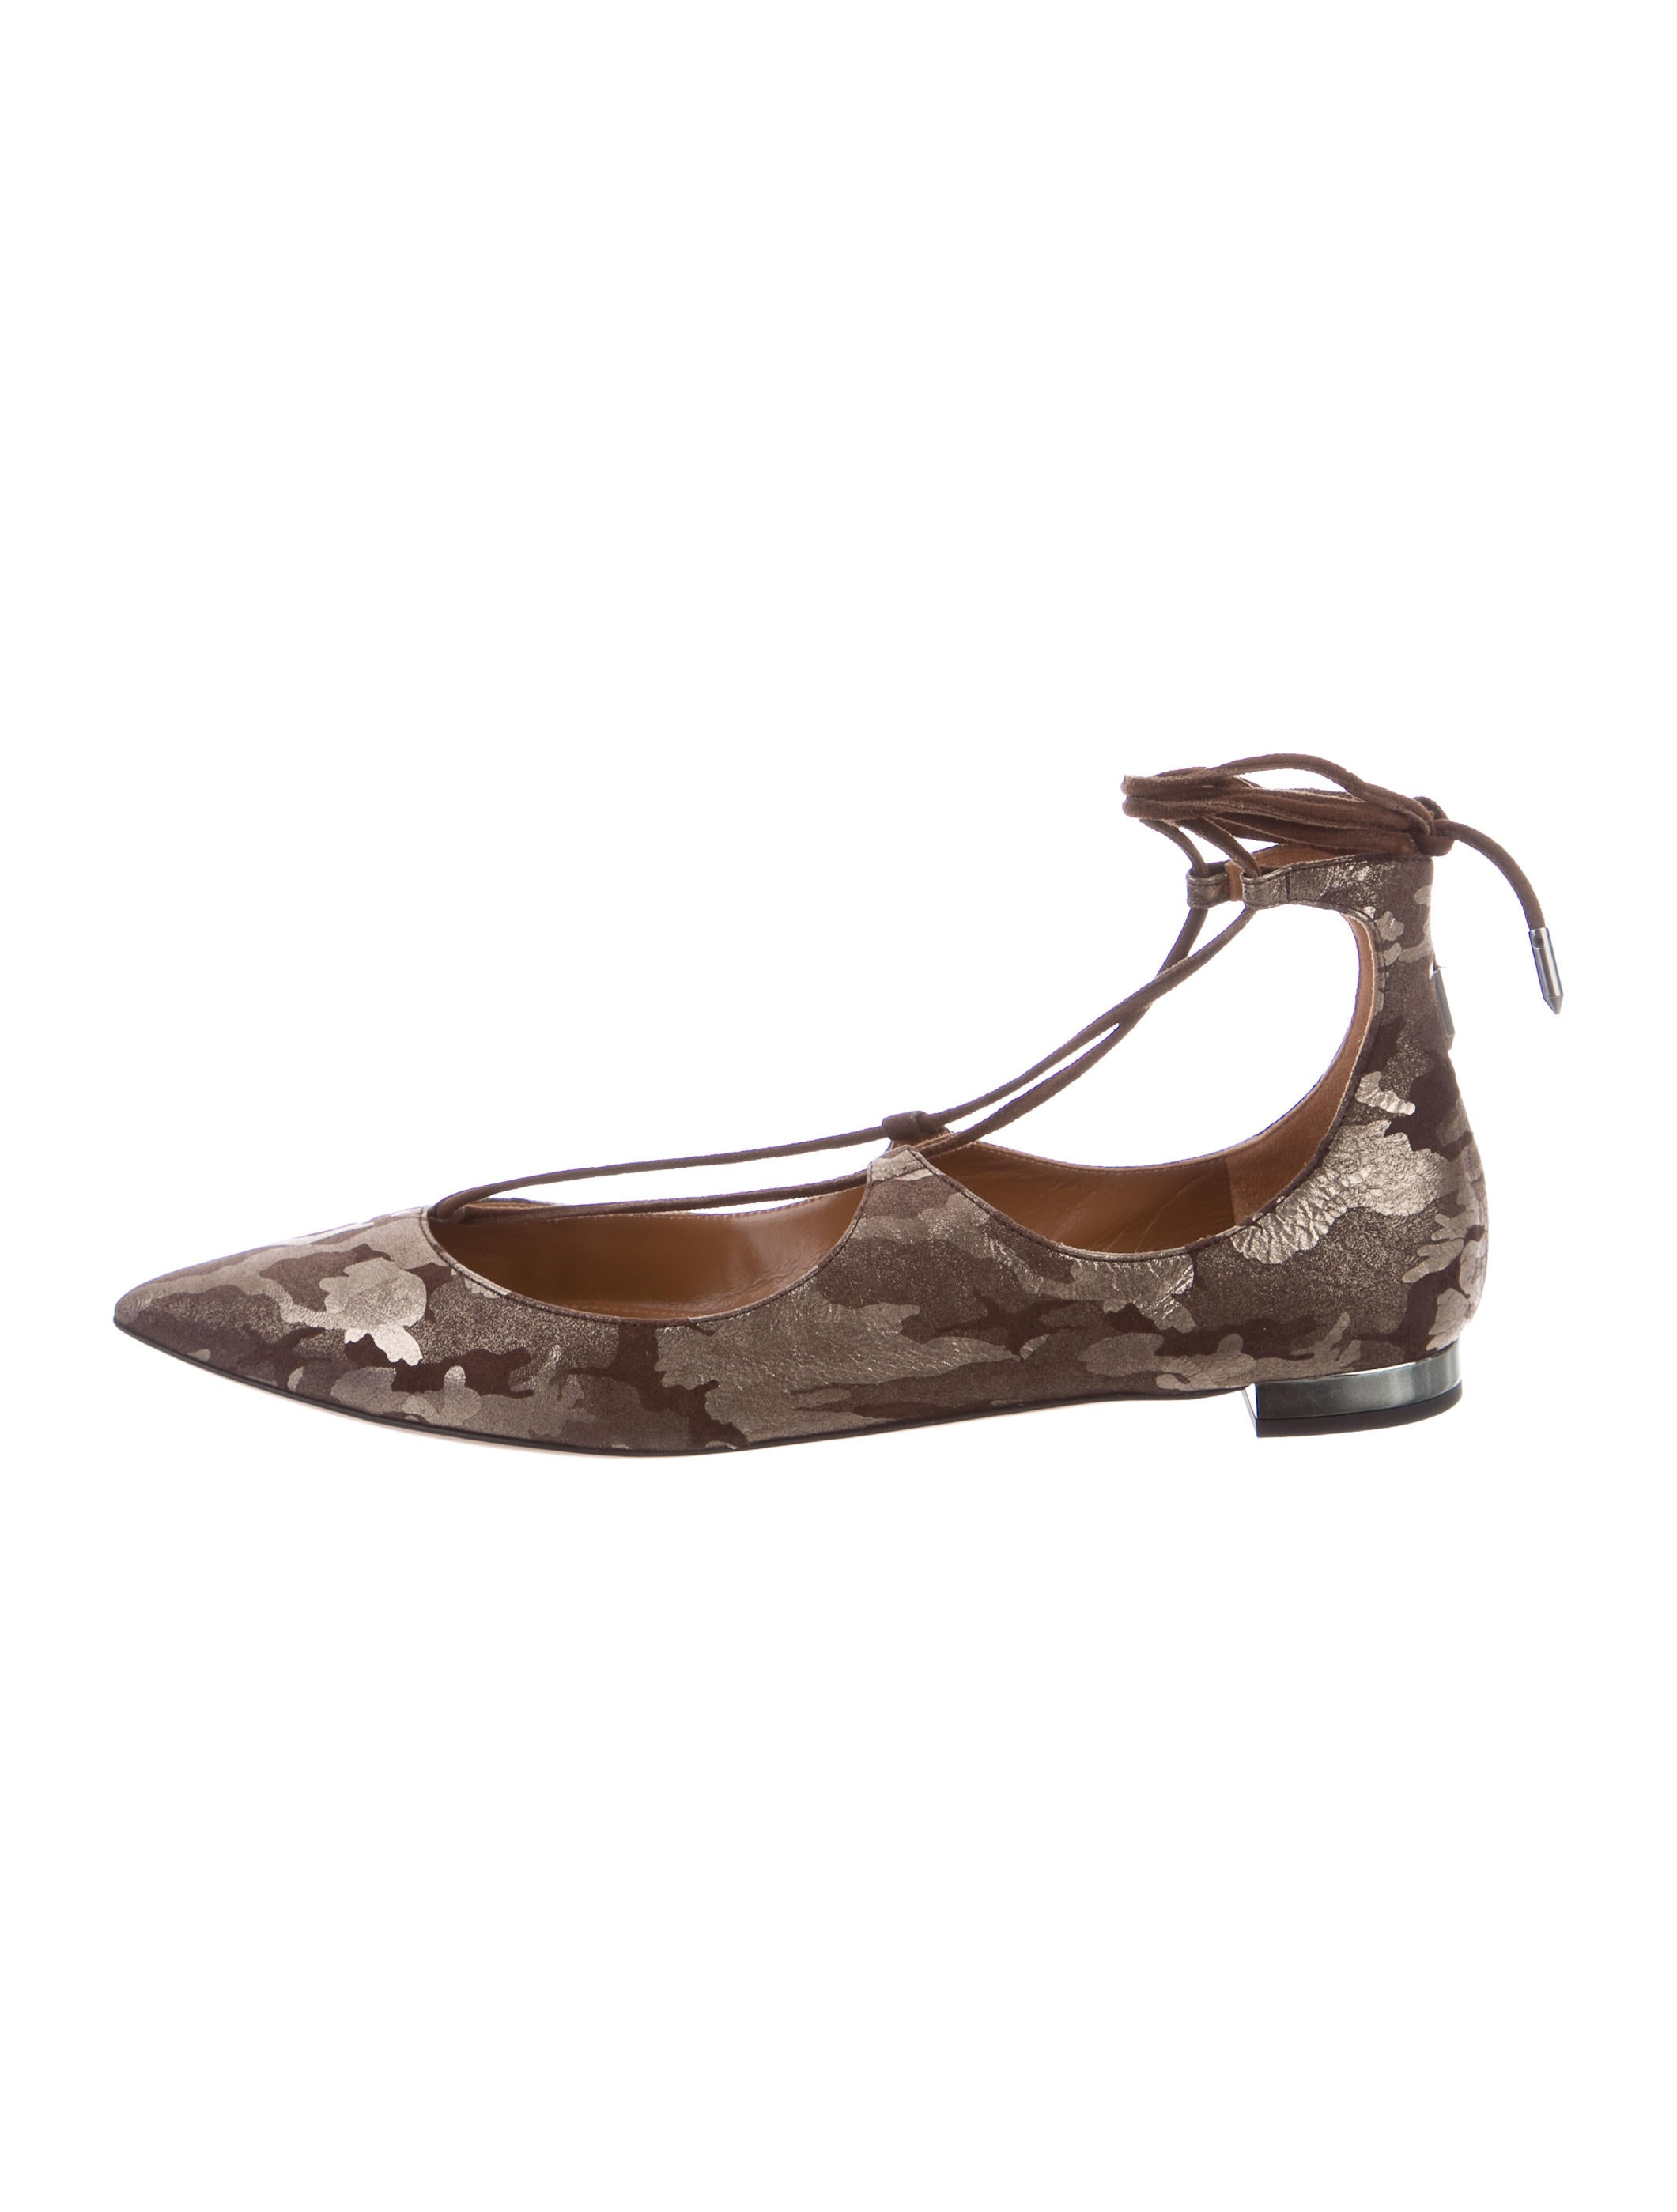 Aquazzura Christy Lace-Up Flats w/ Tags buy cheap ebay 100% authentic online outlet discount clearance how much QfZ14C